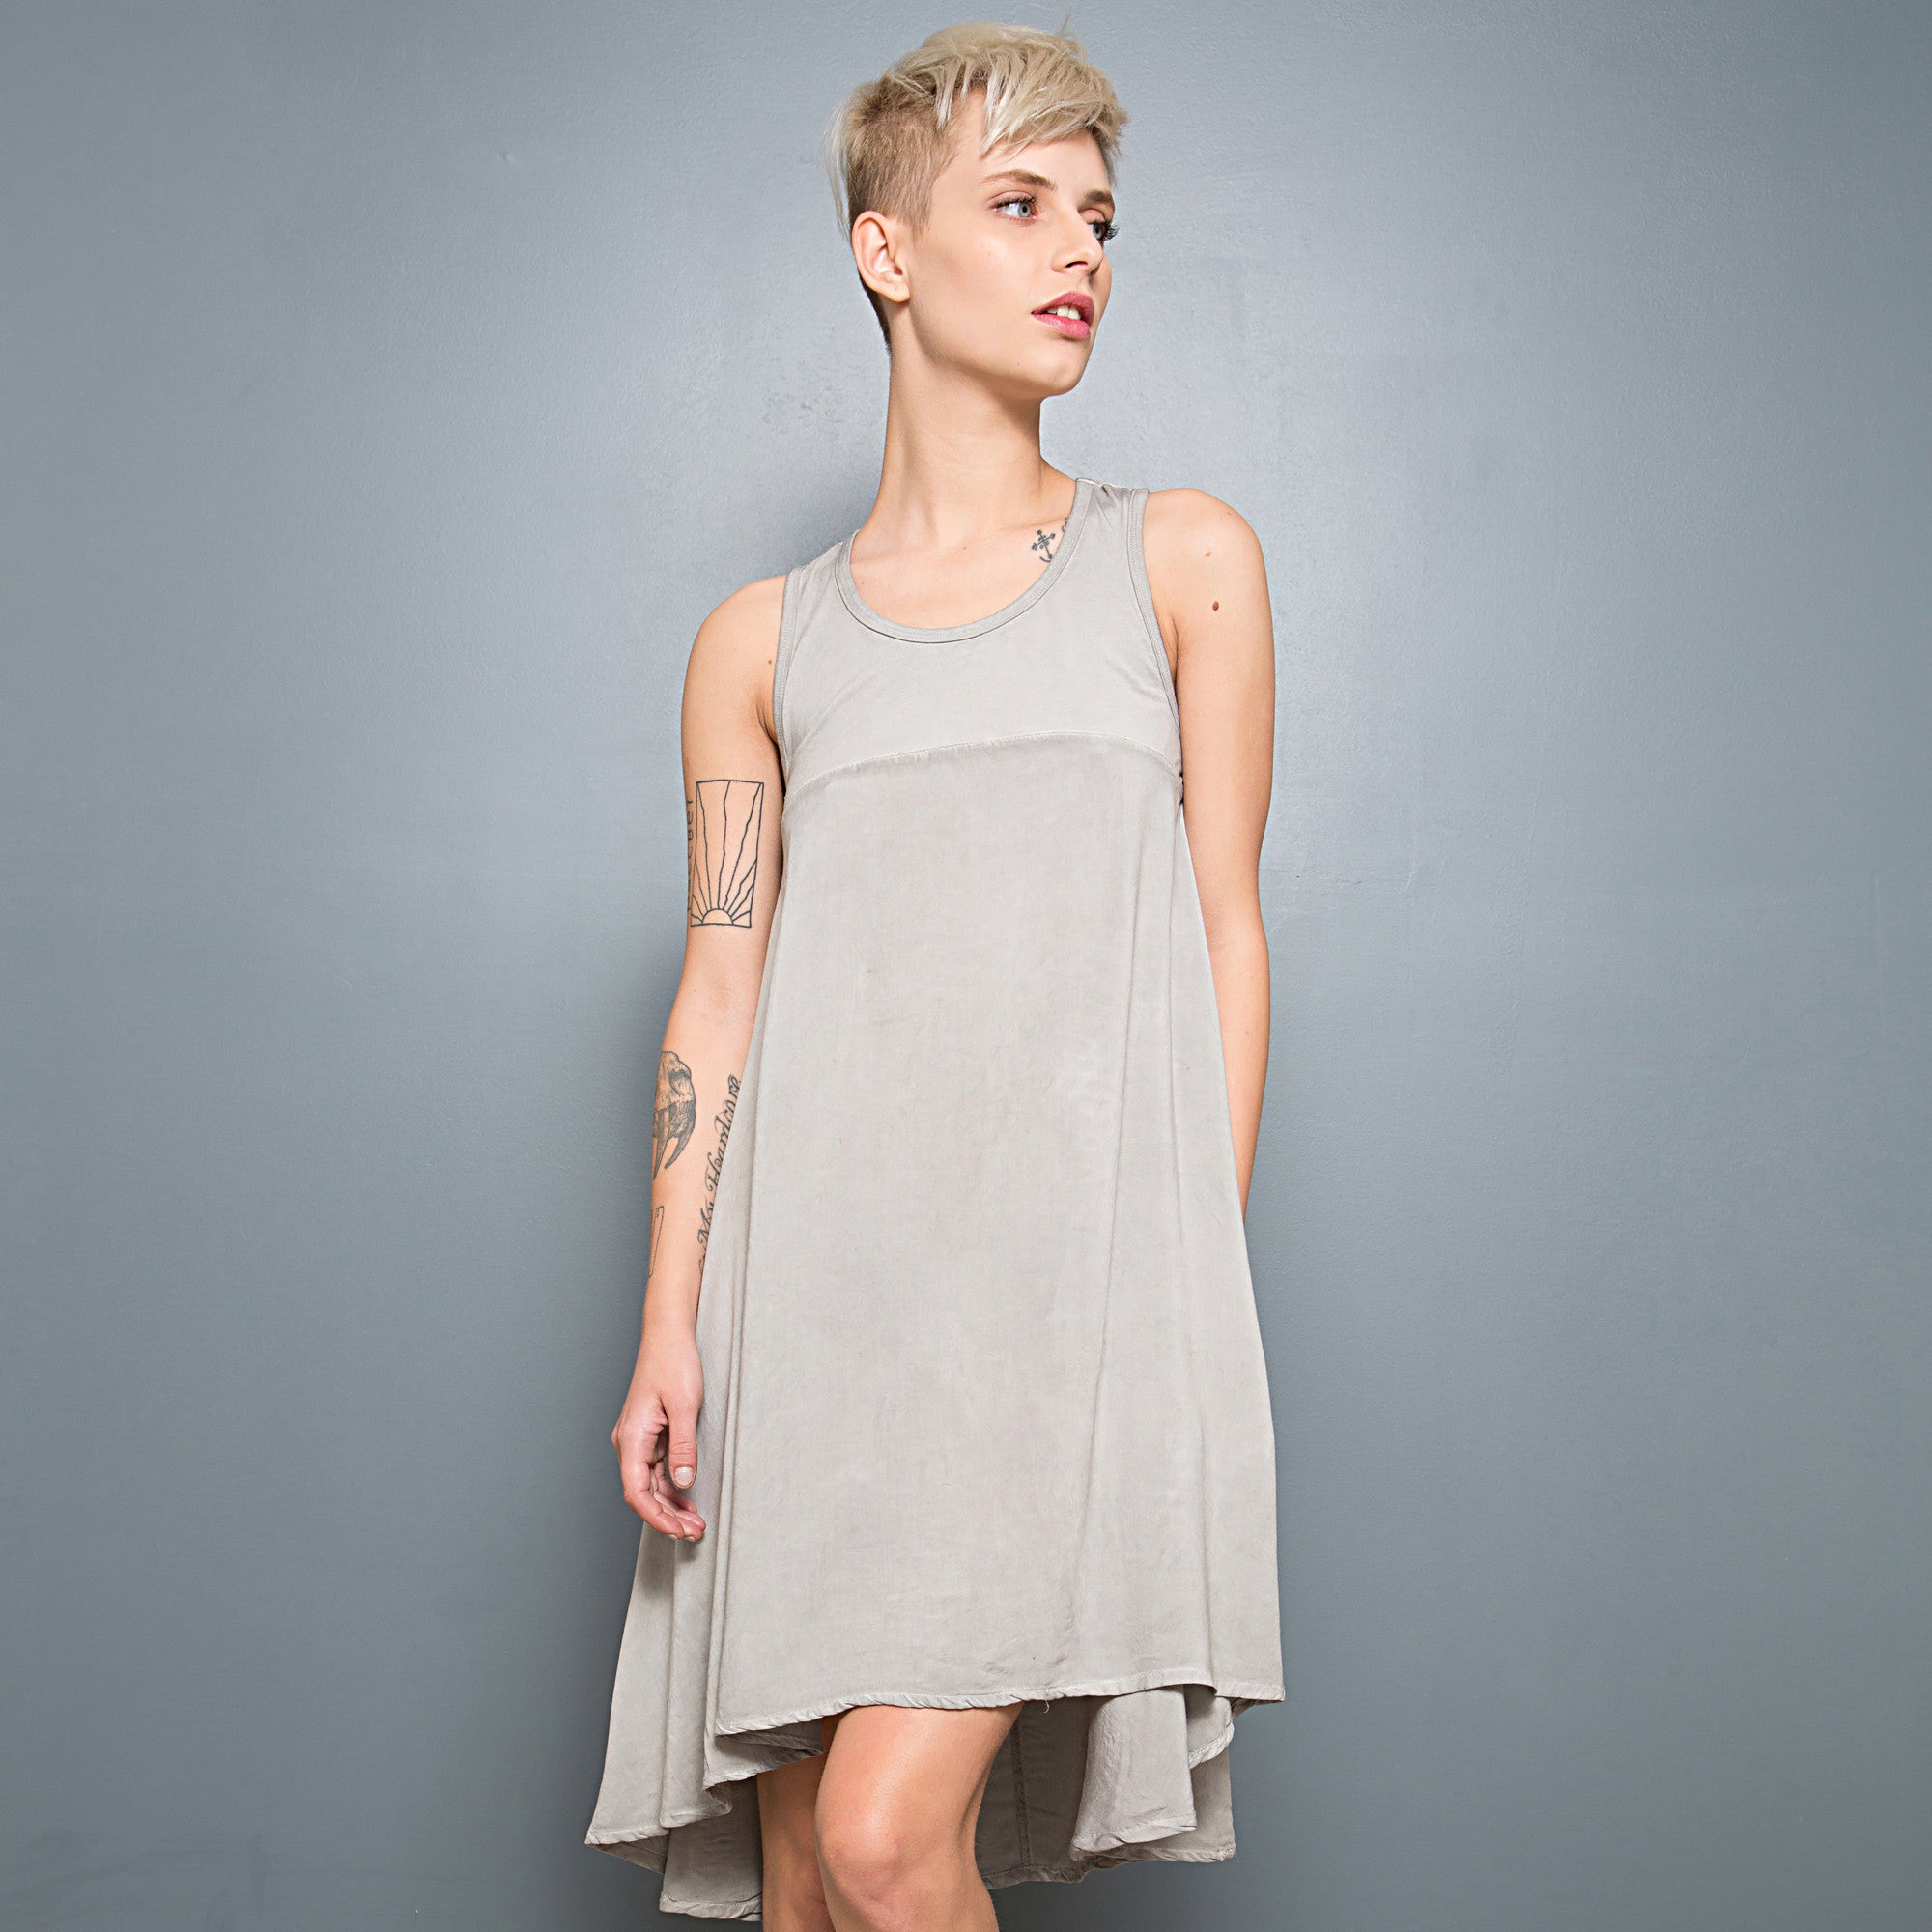 Half jersey half viscose summer dress - DuendeFashion  - 6